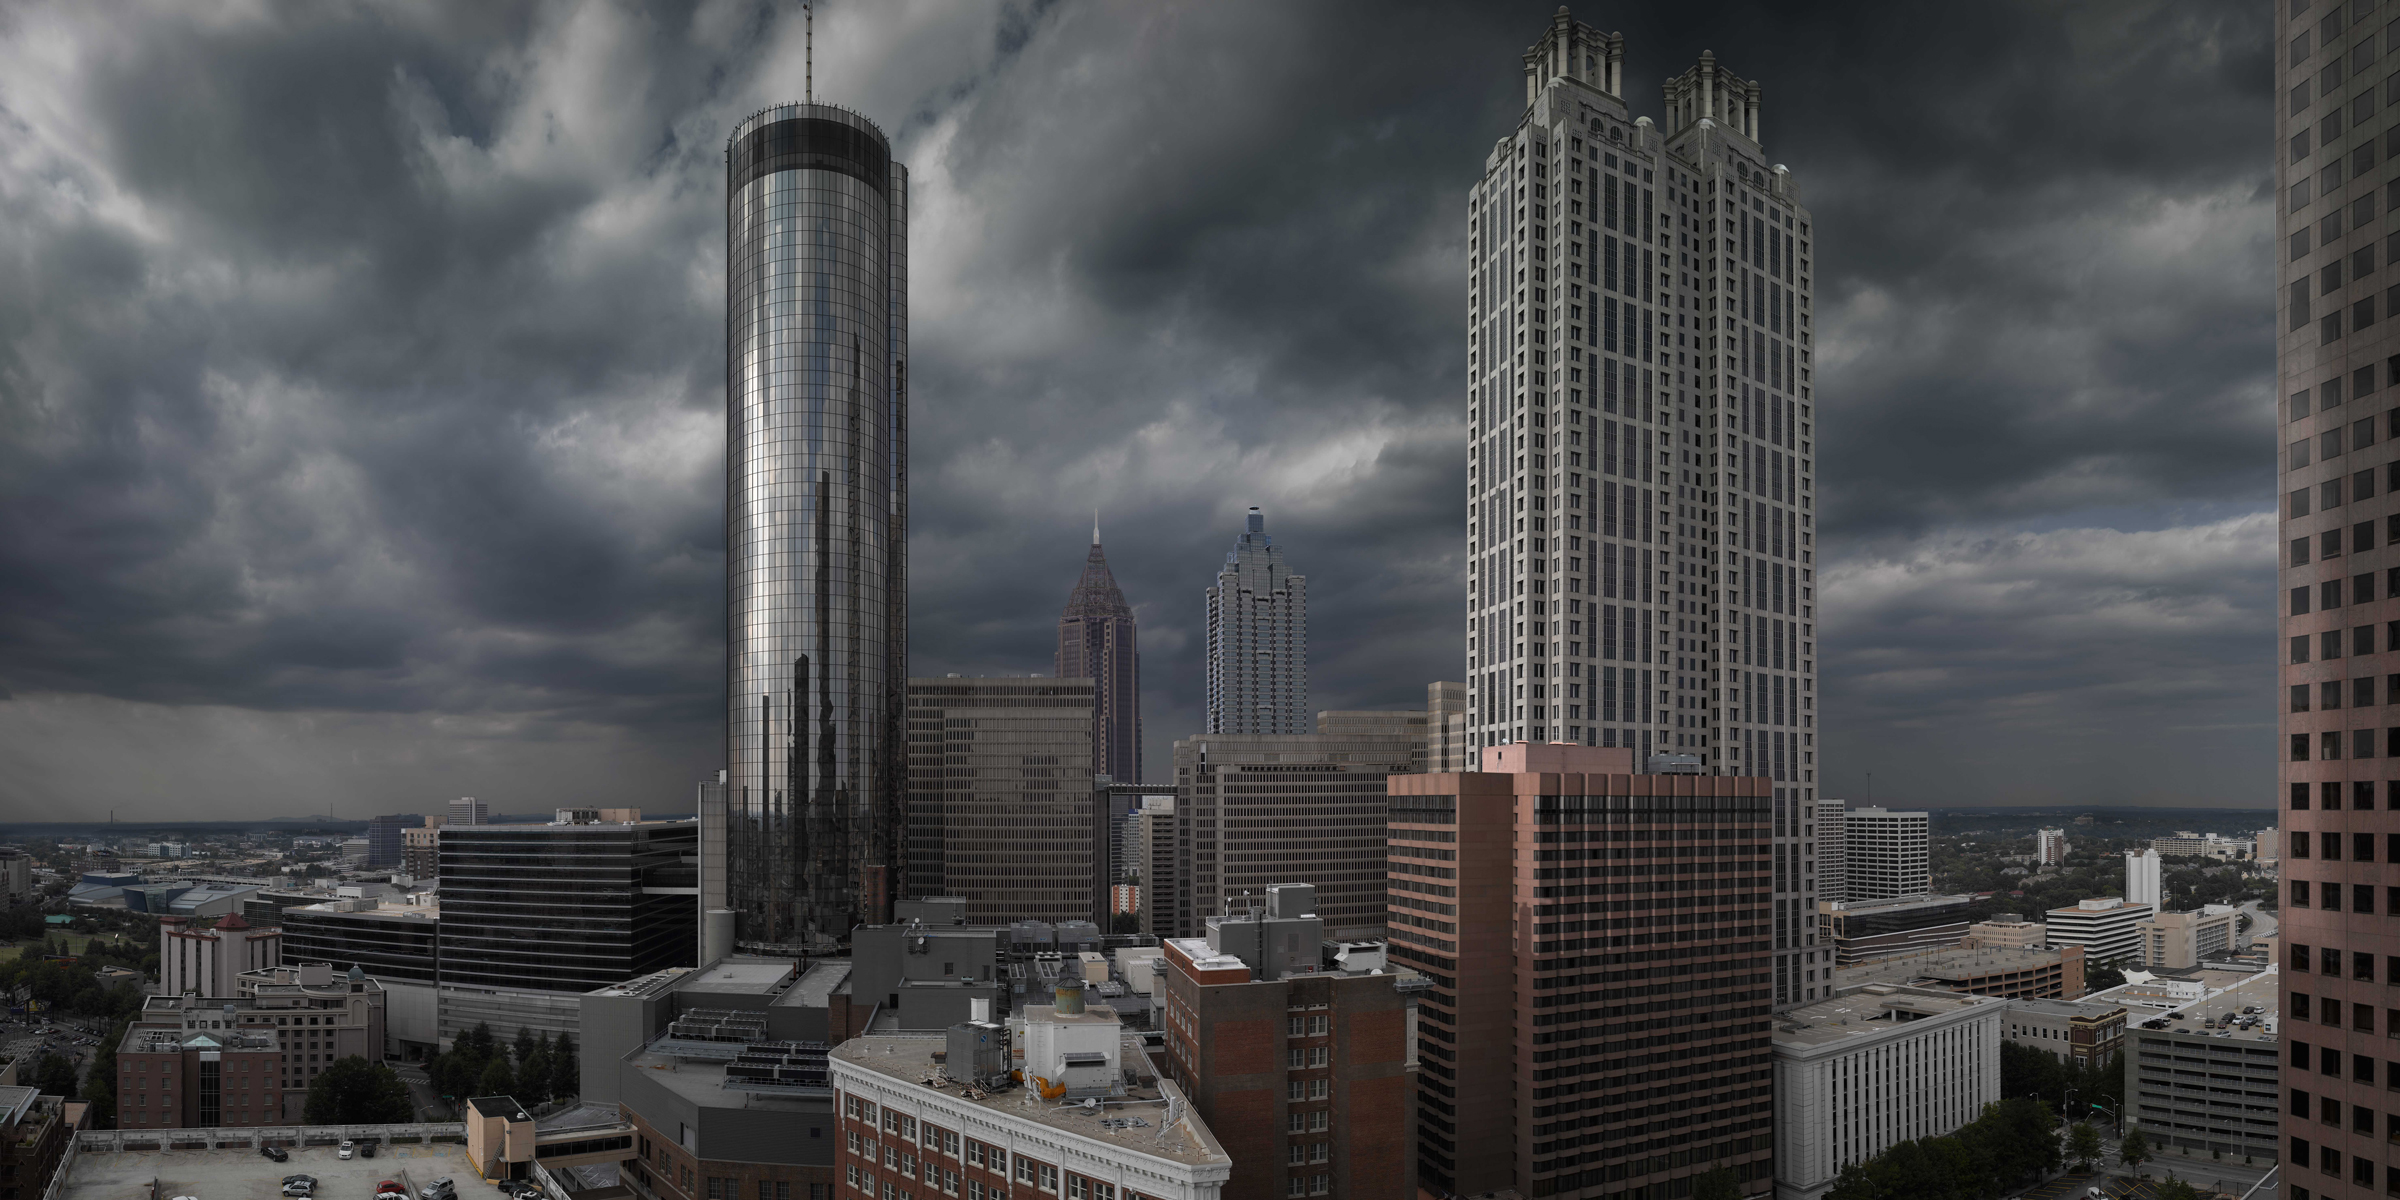 Stormy Skyline Atlanta, Richard Lund, The Change-up movie translite